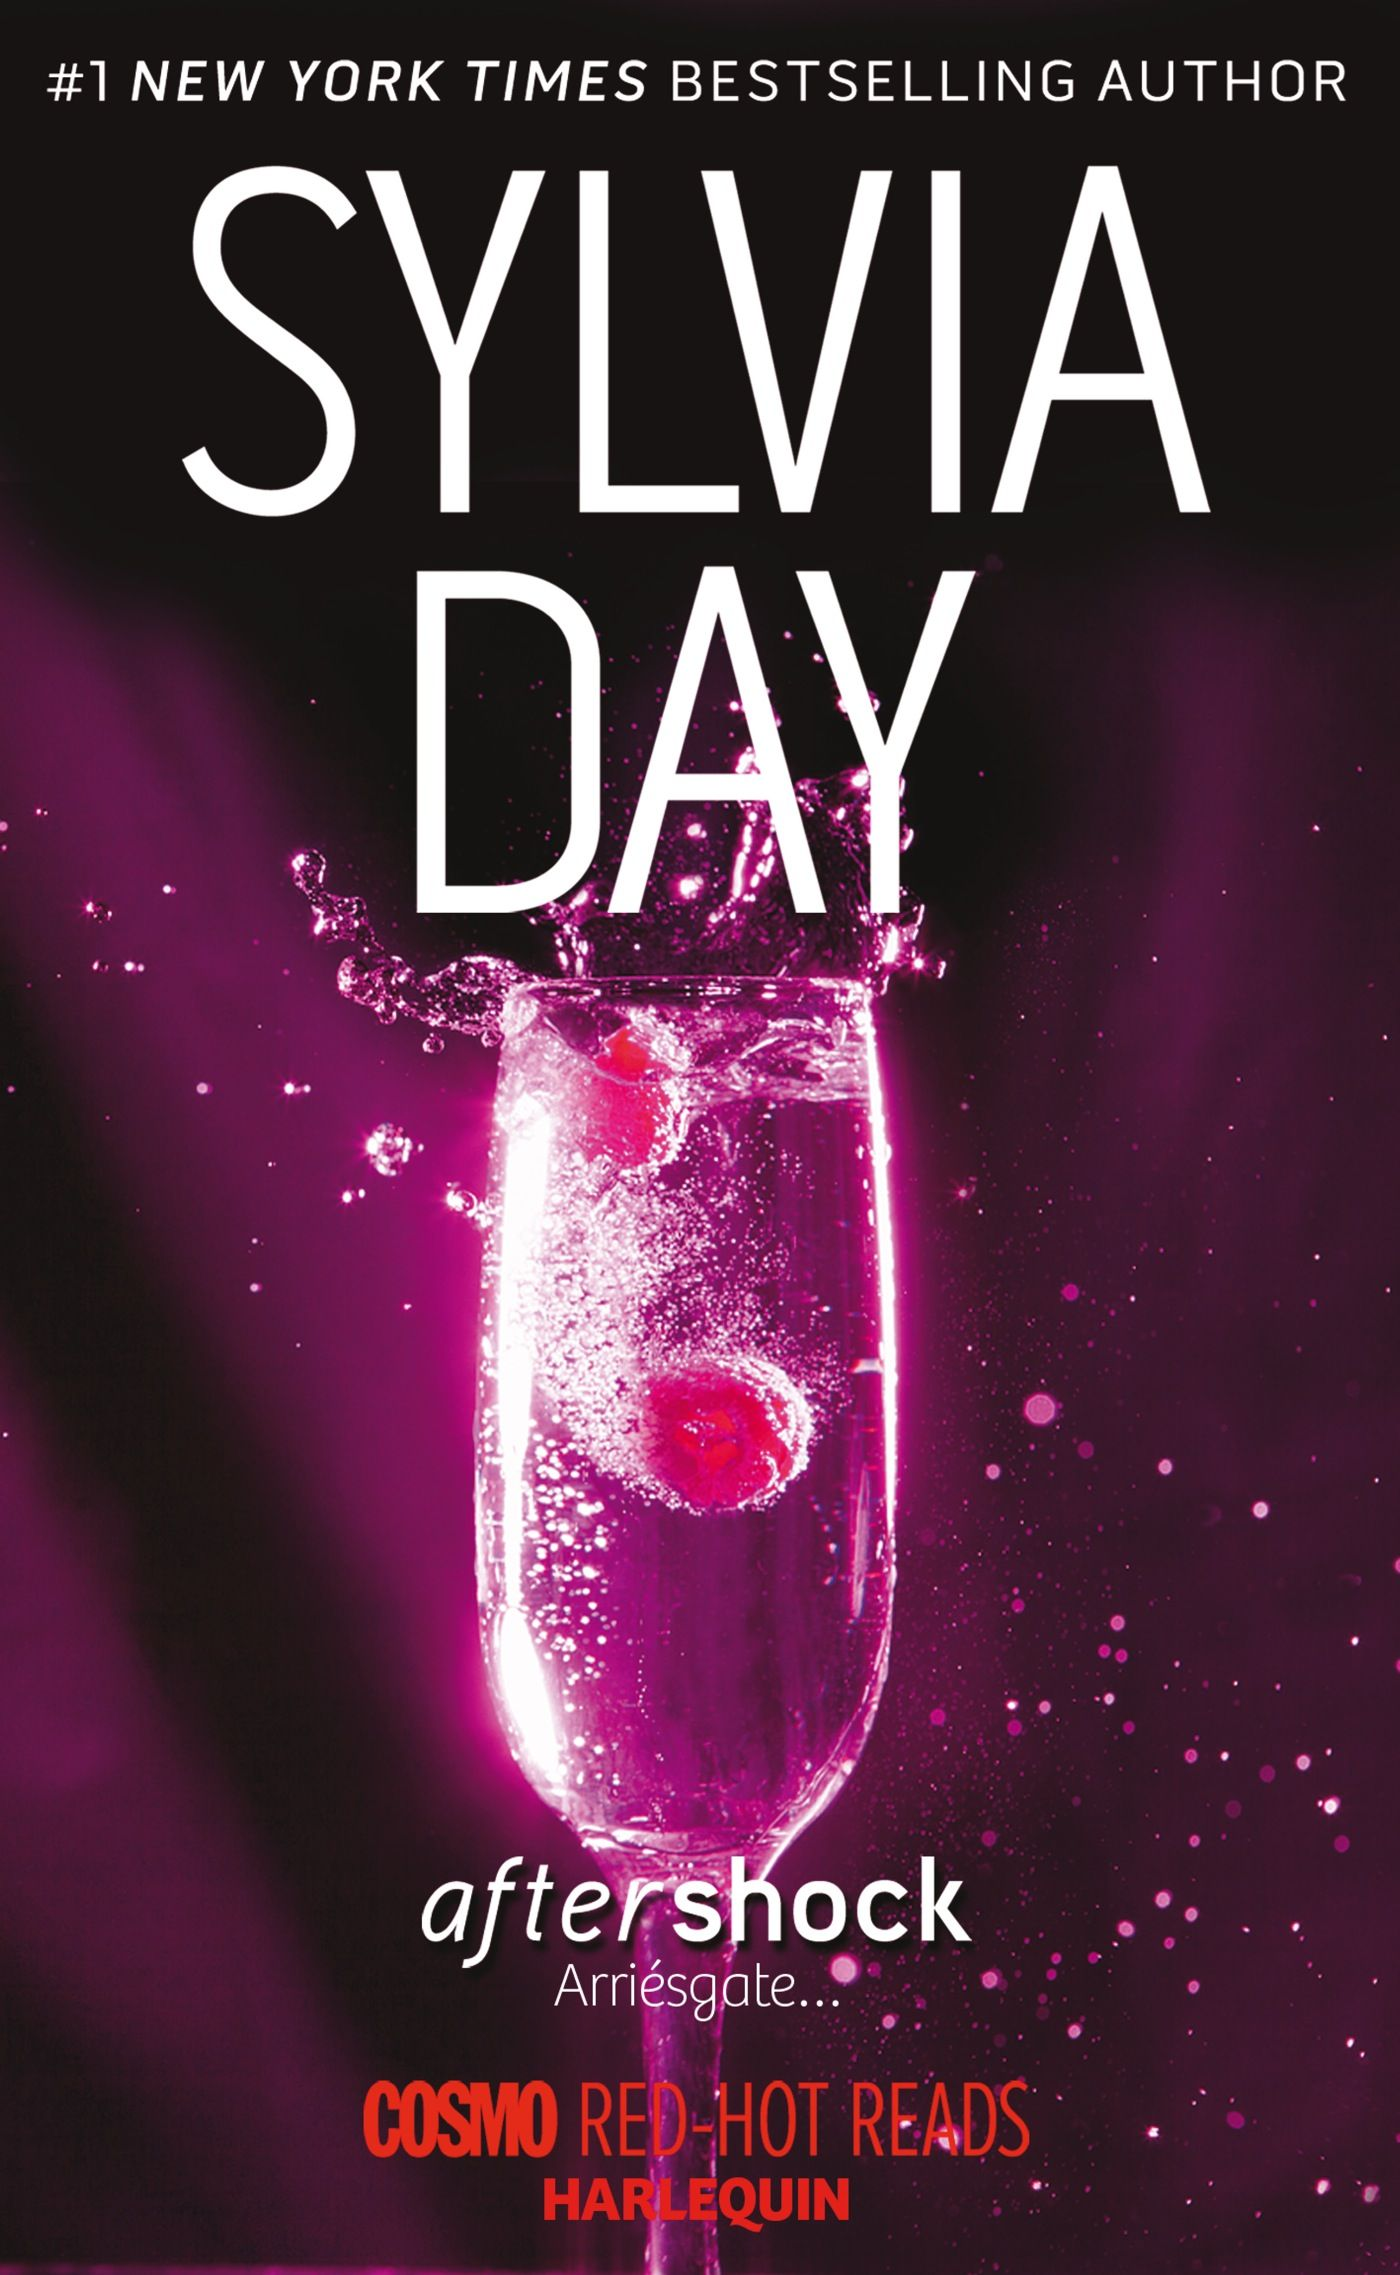 Descargar Libros Por Internet Aftershock Arriésgate De Sylvia Day Ebook Libros